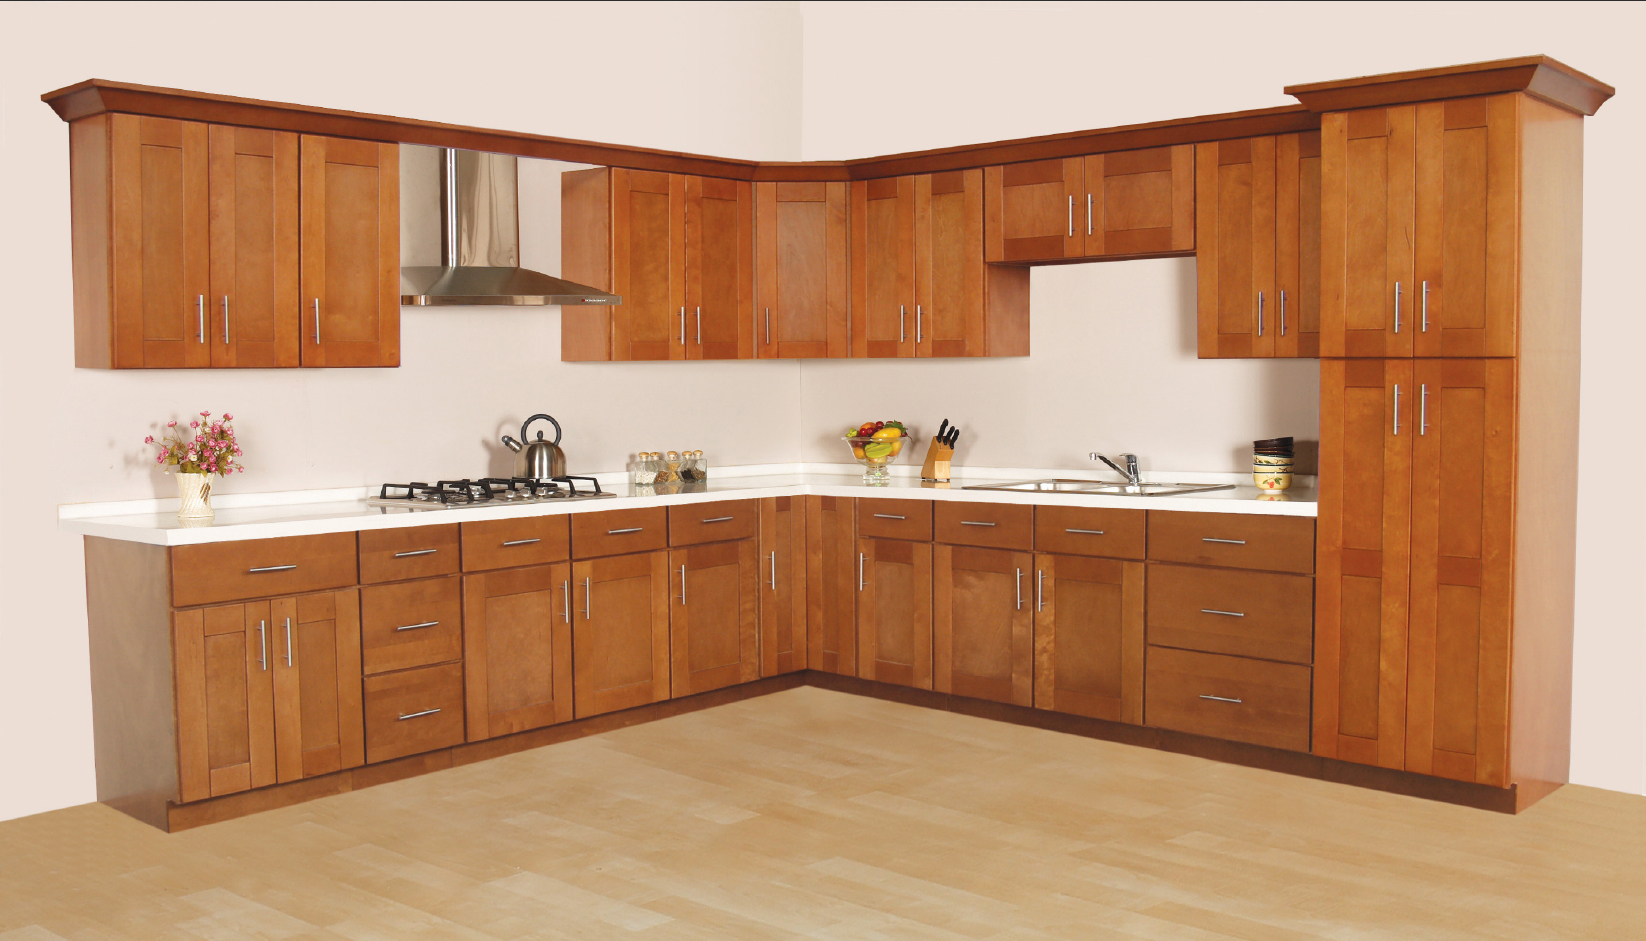 Menards kitchen cabinet price and details home and for Cupboards and cabinets